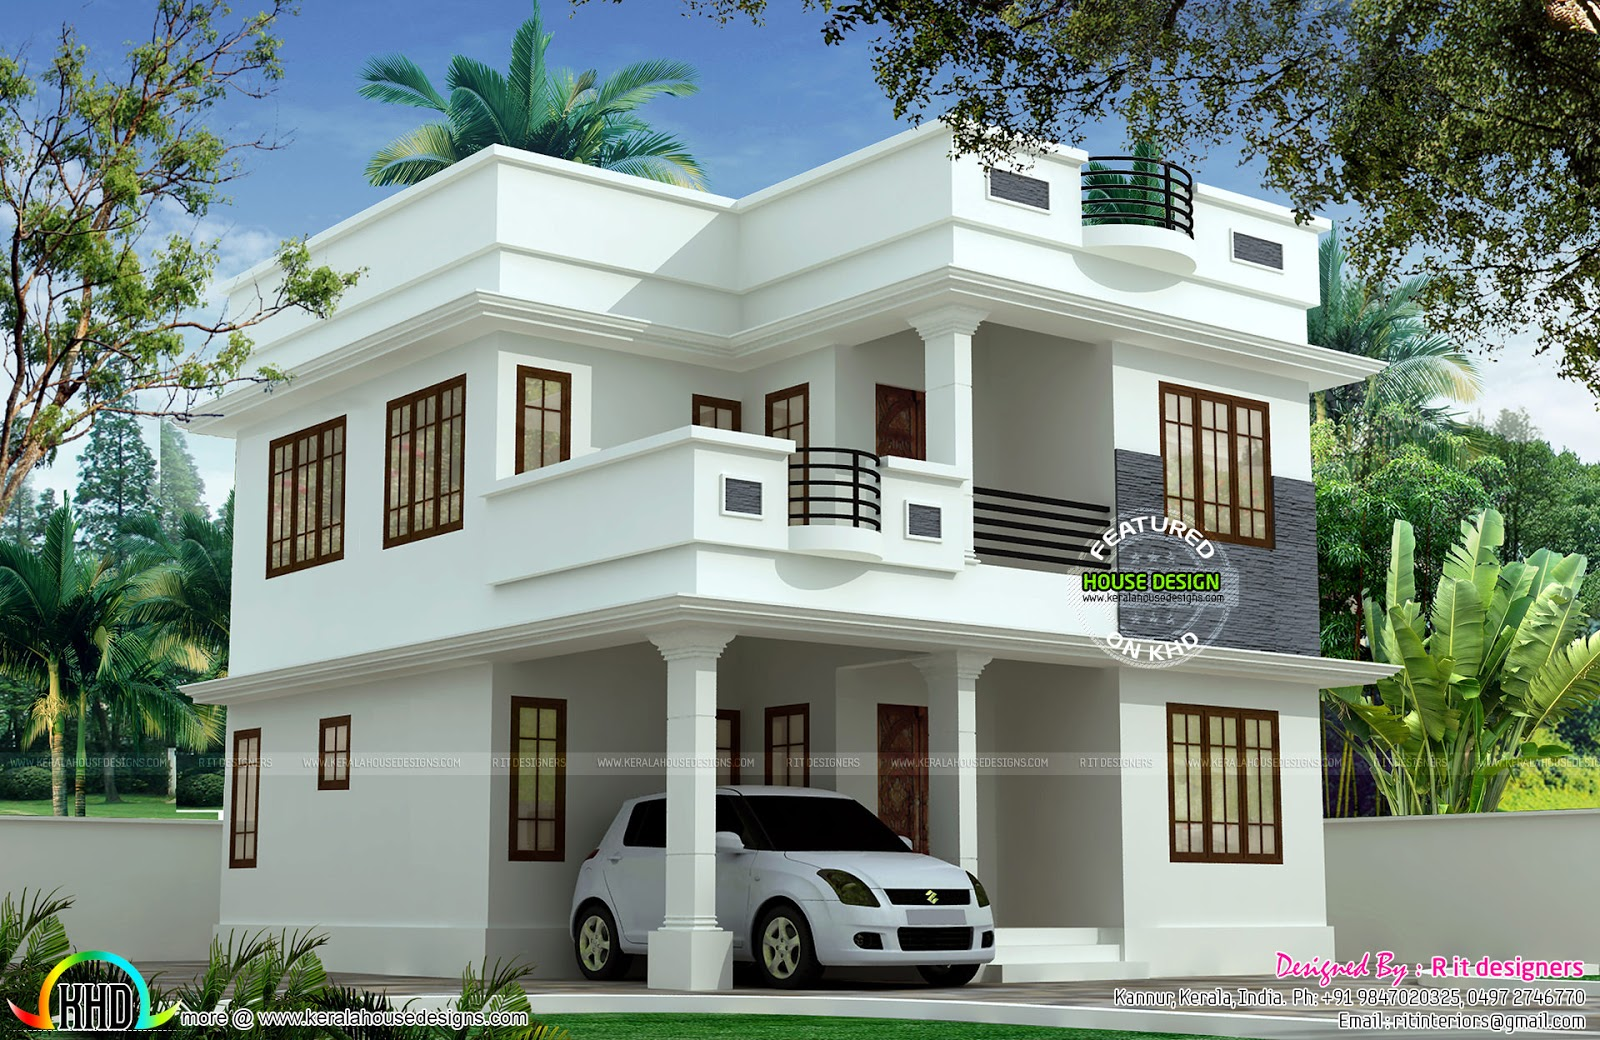 1897 sq ft cute double storied house kerala home design for Indian small house design 2 bedroom